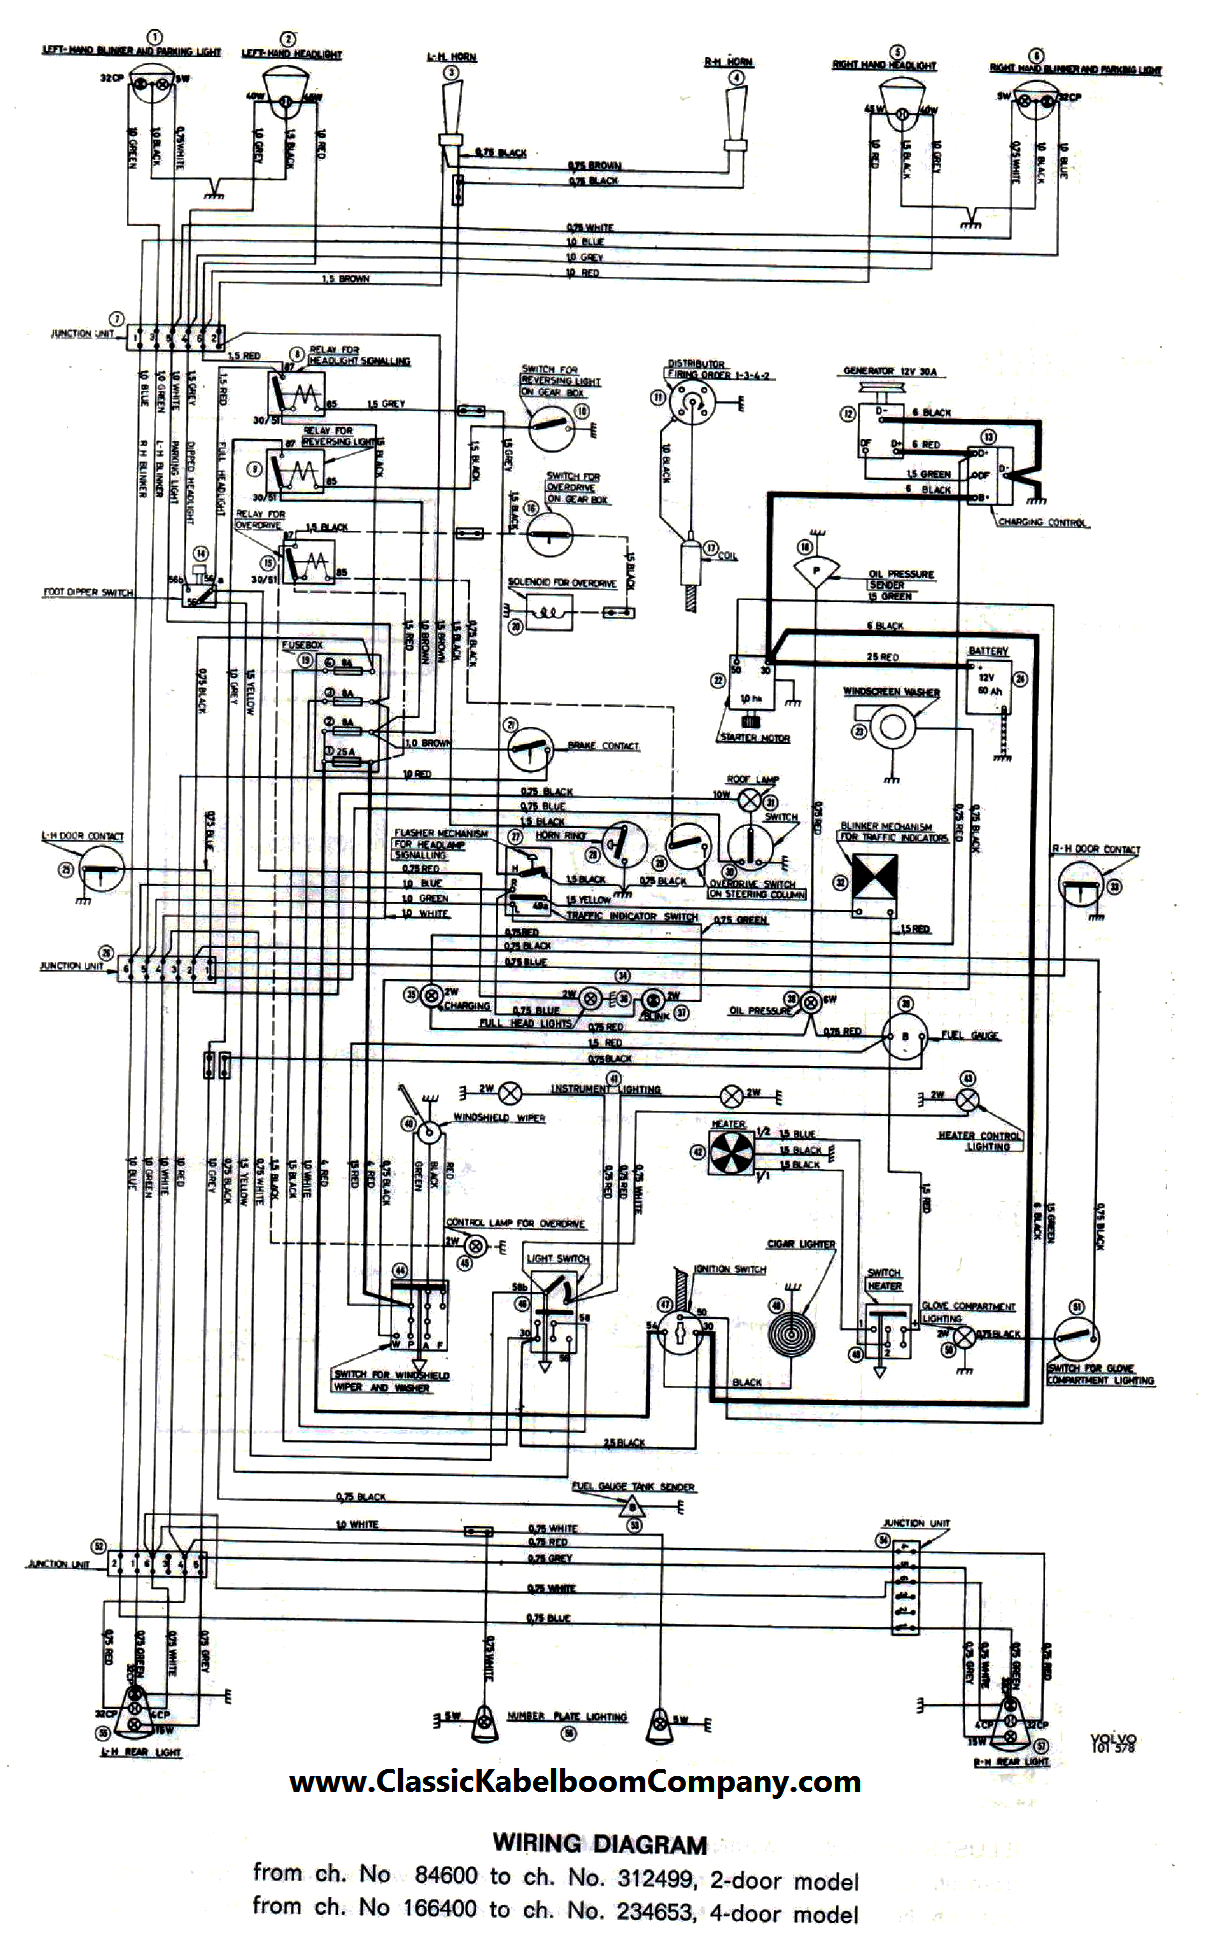 John Deere X320 Wiring Diagram on john deere electrical diagrams